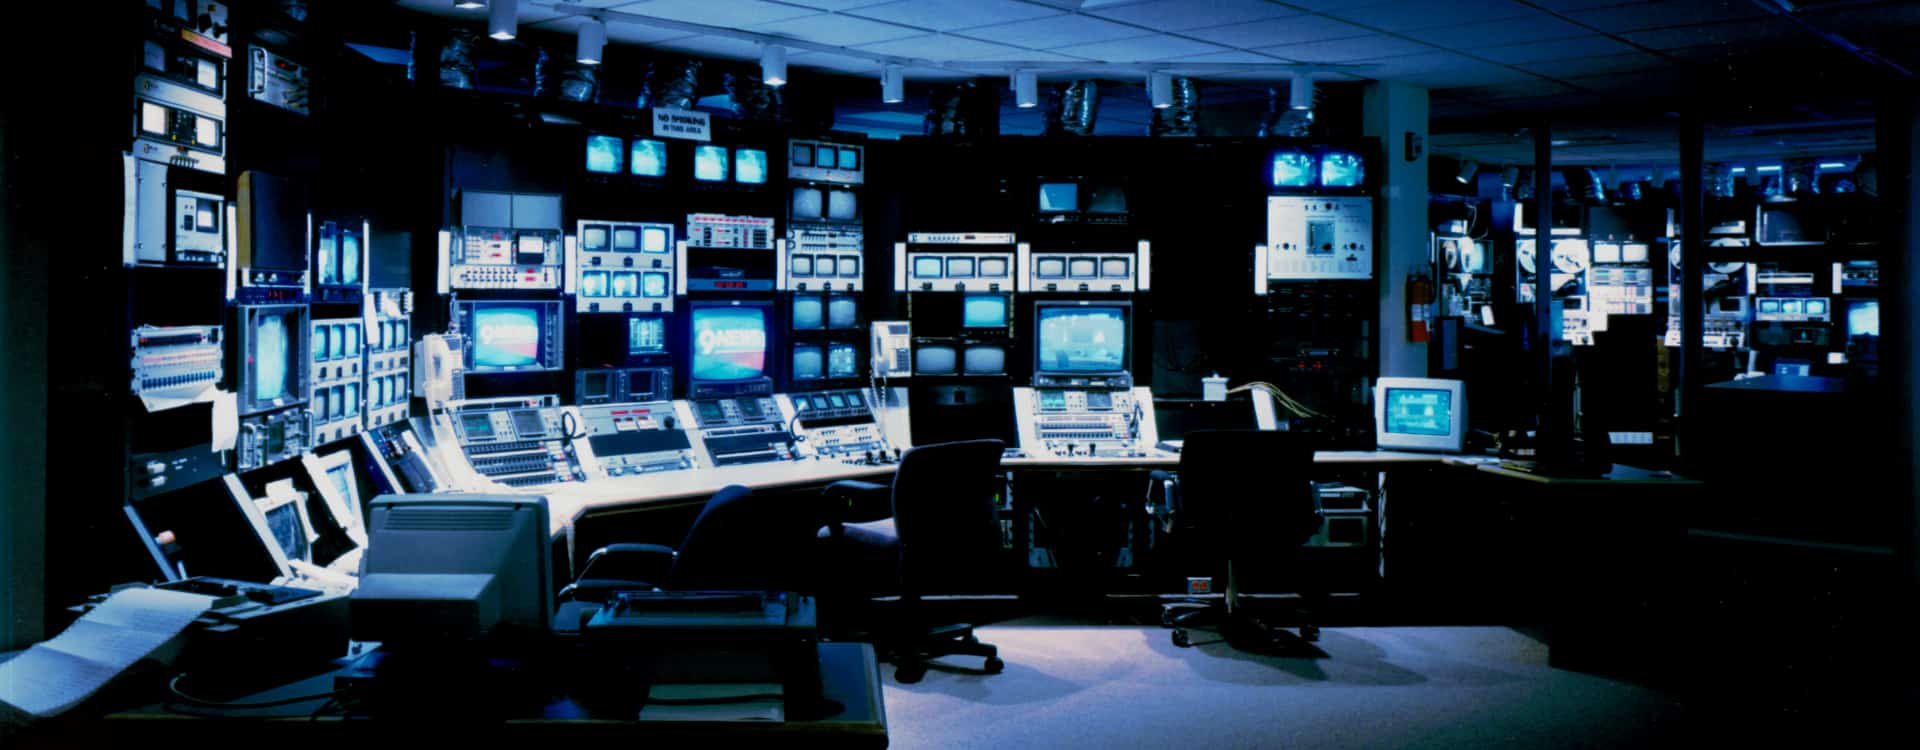 Channel 9 TV broadcast studios by DLAA, D L ADAMS ASSOCIATES, Audio Visual & low voltage consulting, USA